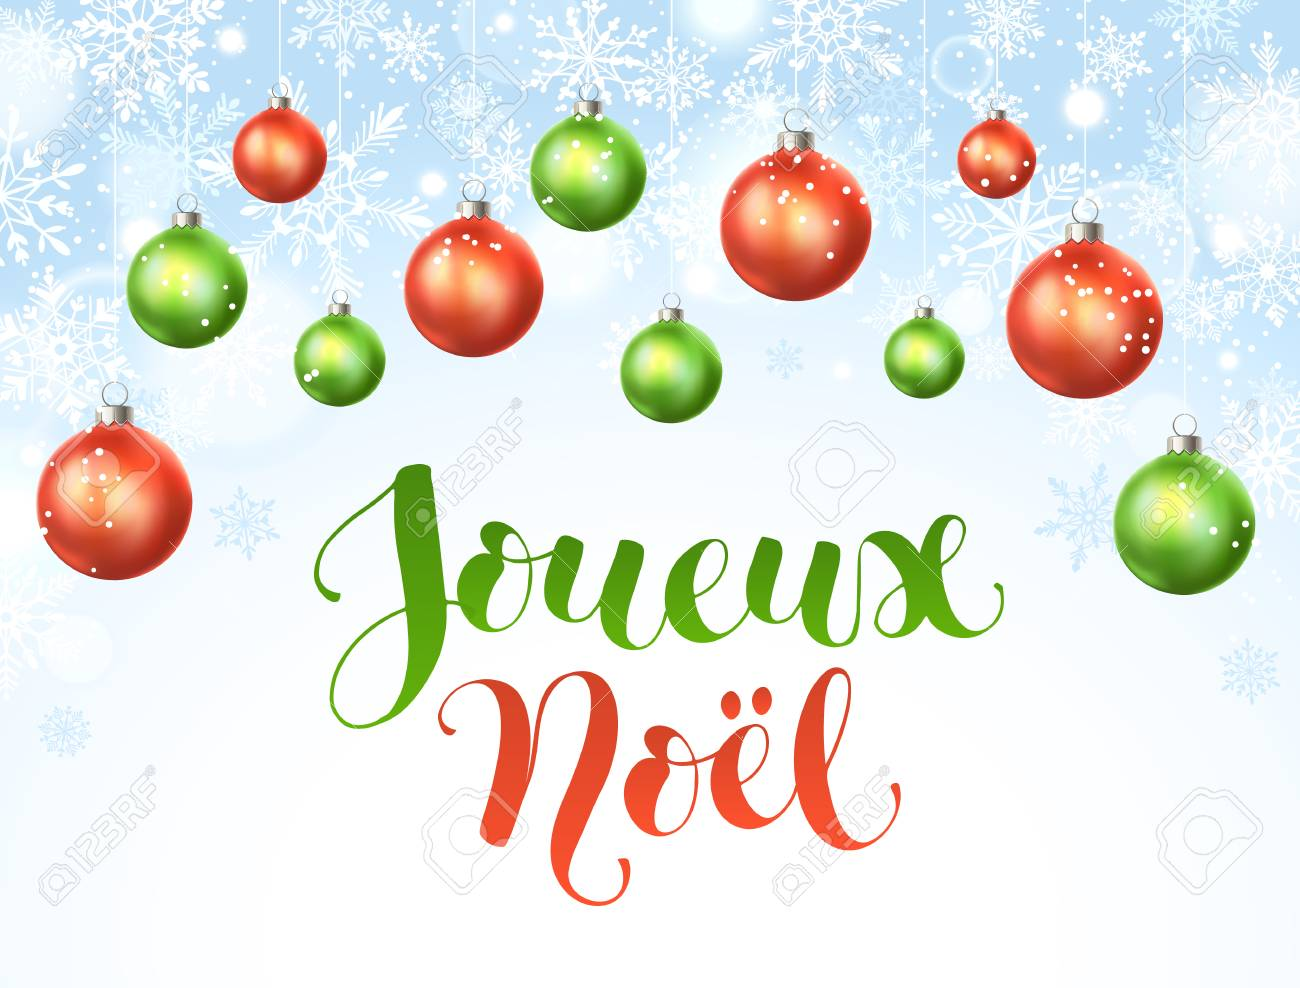 Christmas In French.Merry Christmas French Text Vector Illustration Modern Winter